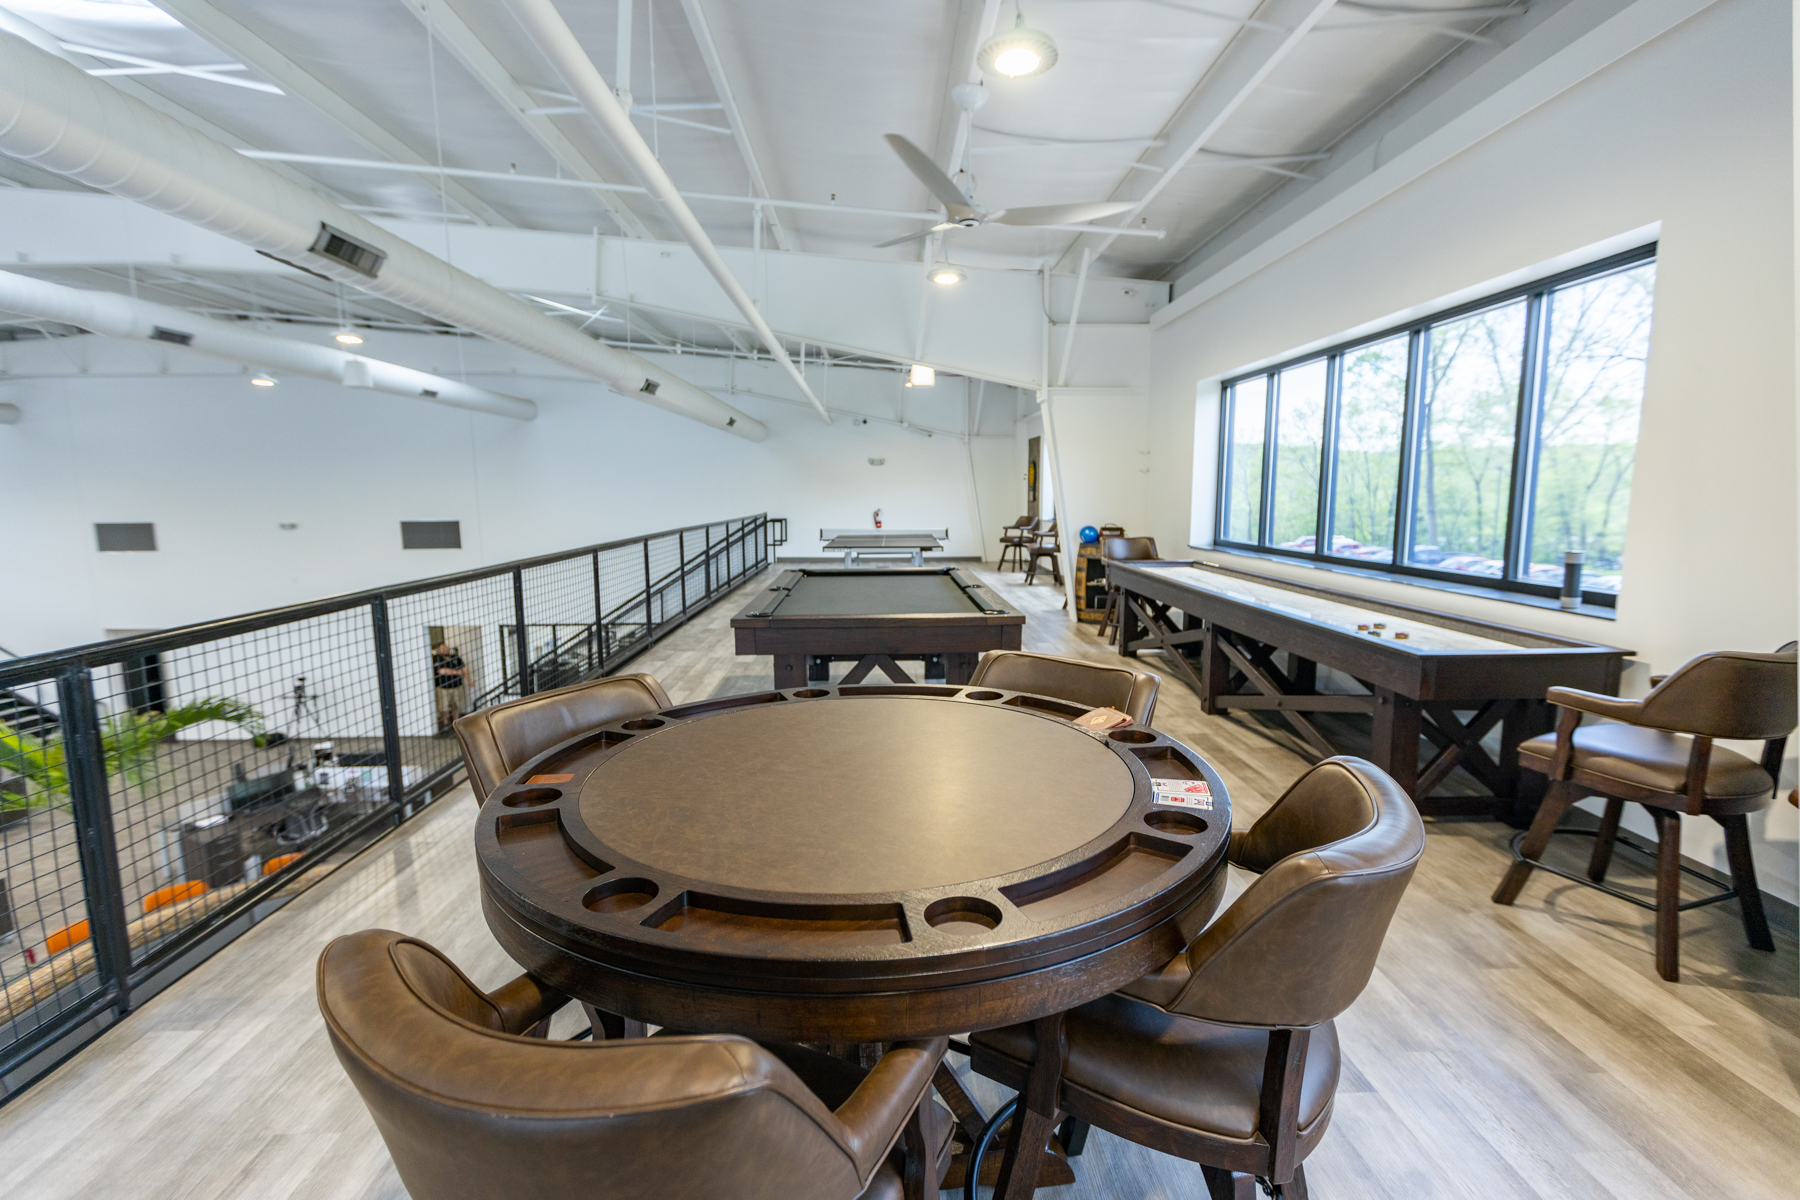 Oasis recreational space for employees